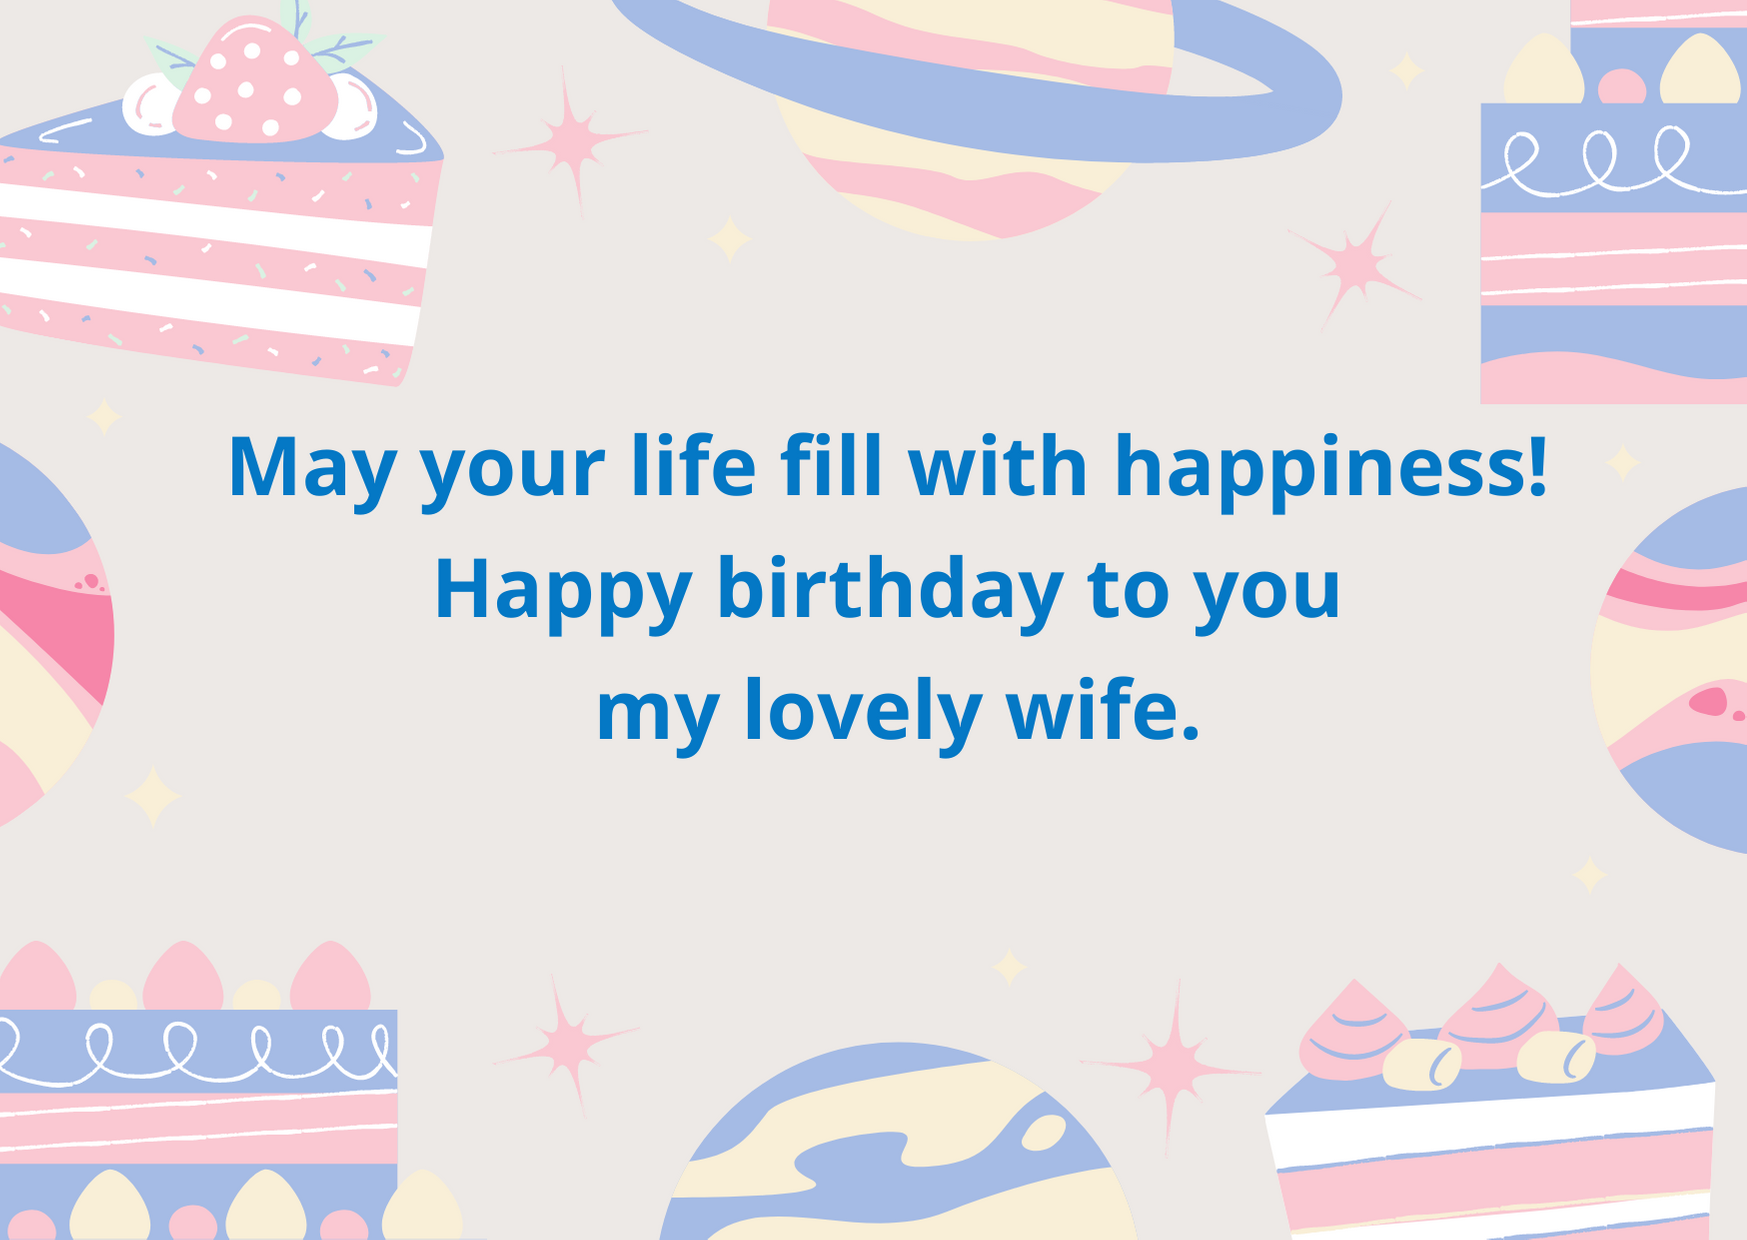 birthday wishes for wife from husband